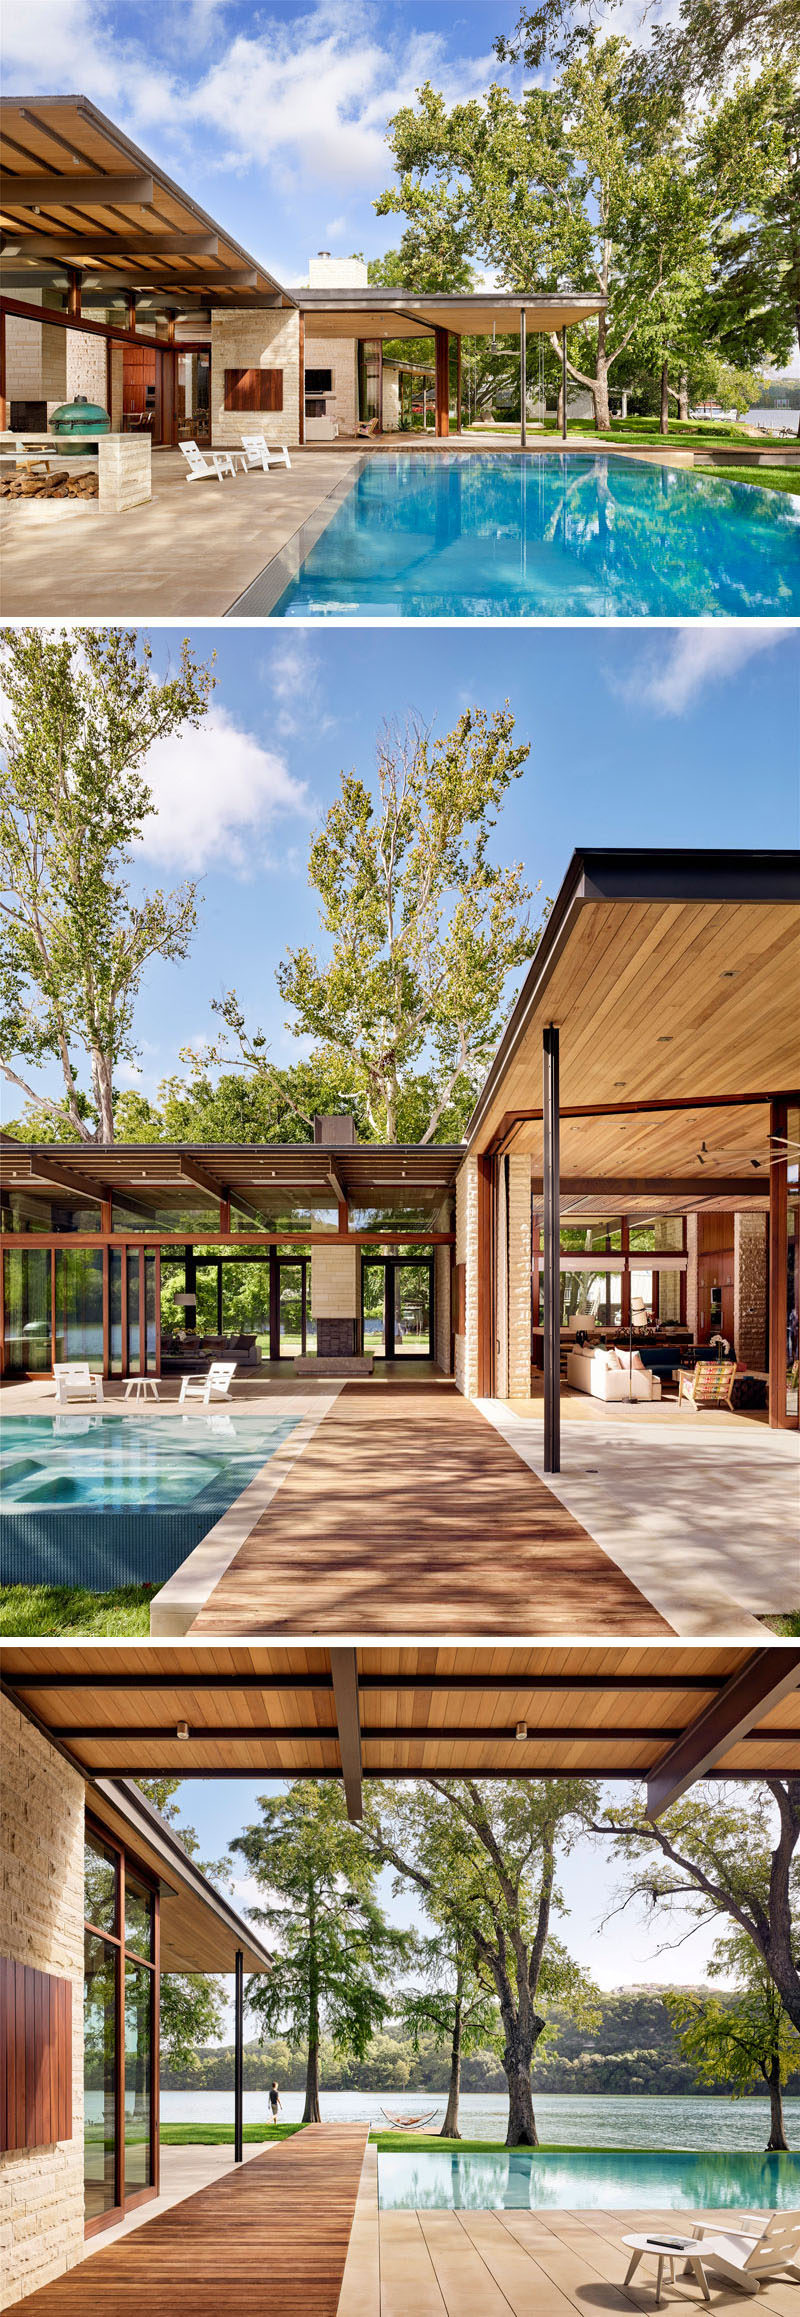 At the rear of this modern lakeside home there's a large swimming pool and outdoor spaces that are covered due to the overhanging roofline. A wood path, that matches the one at the front of the house, leads down to a dock on the lake. #ModernHouse #SwimmingPool #Landscaping